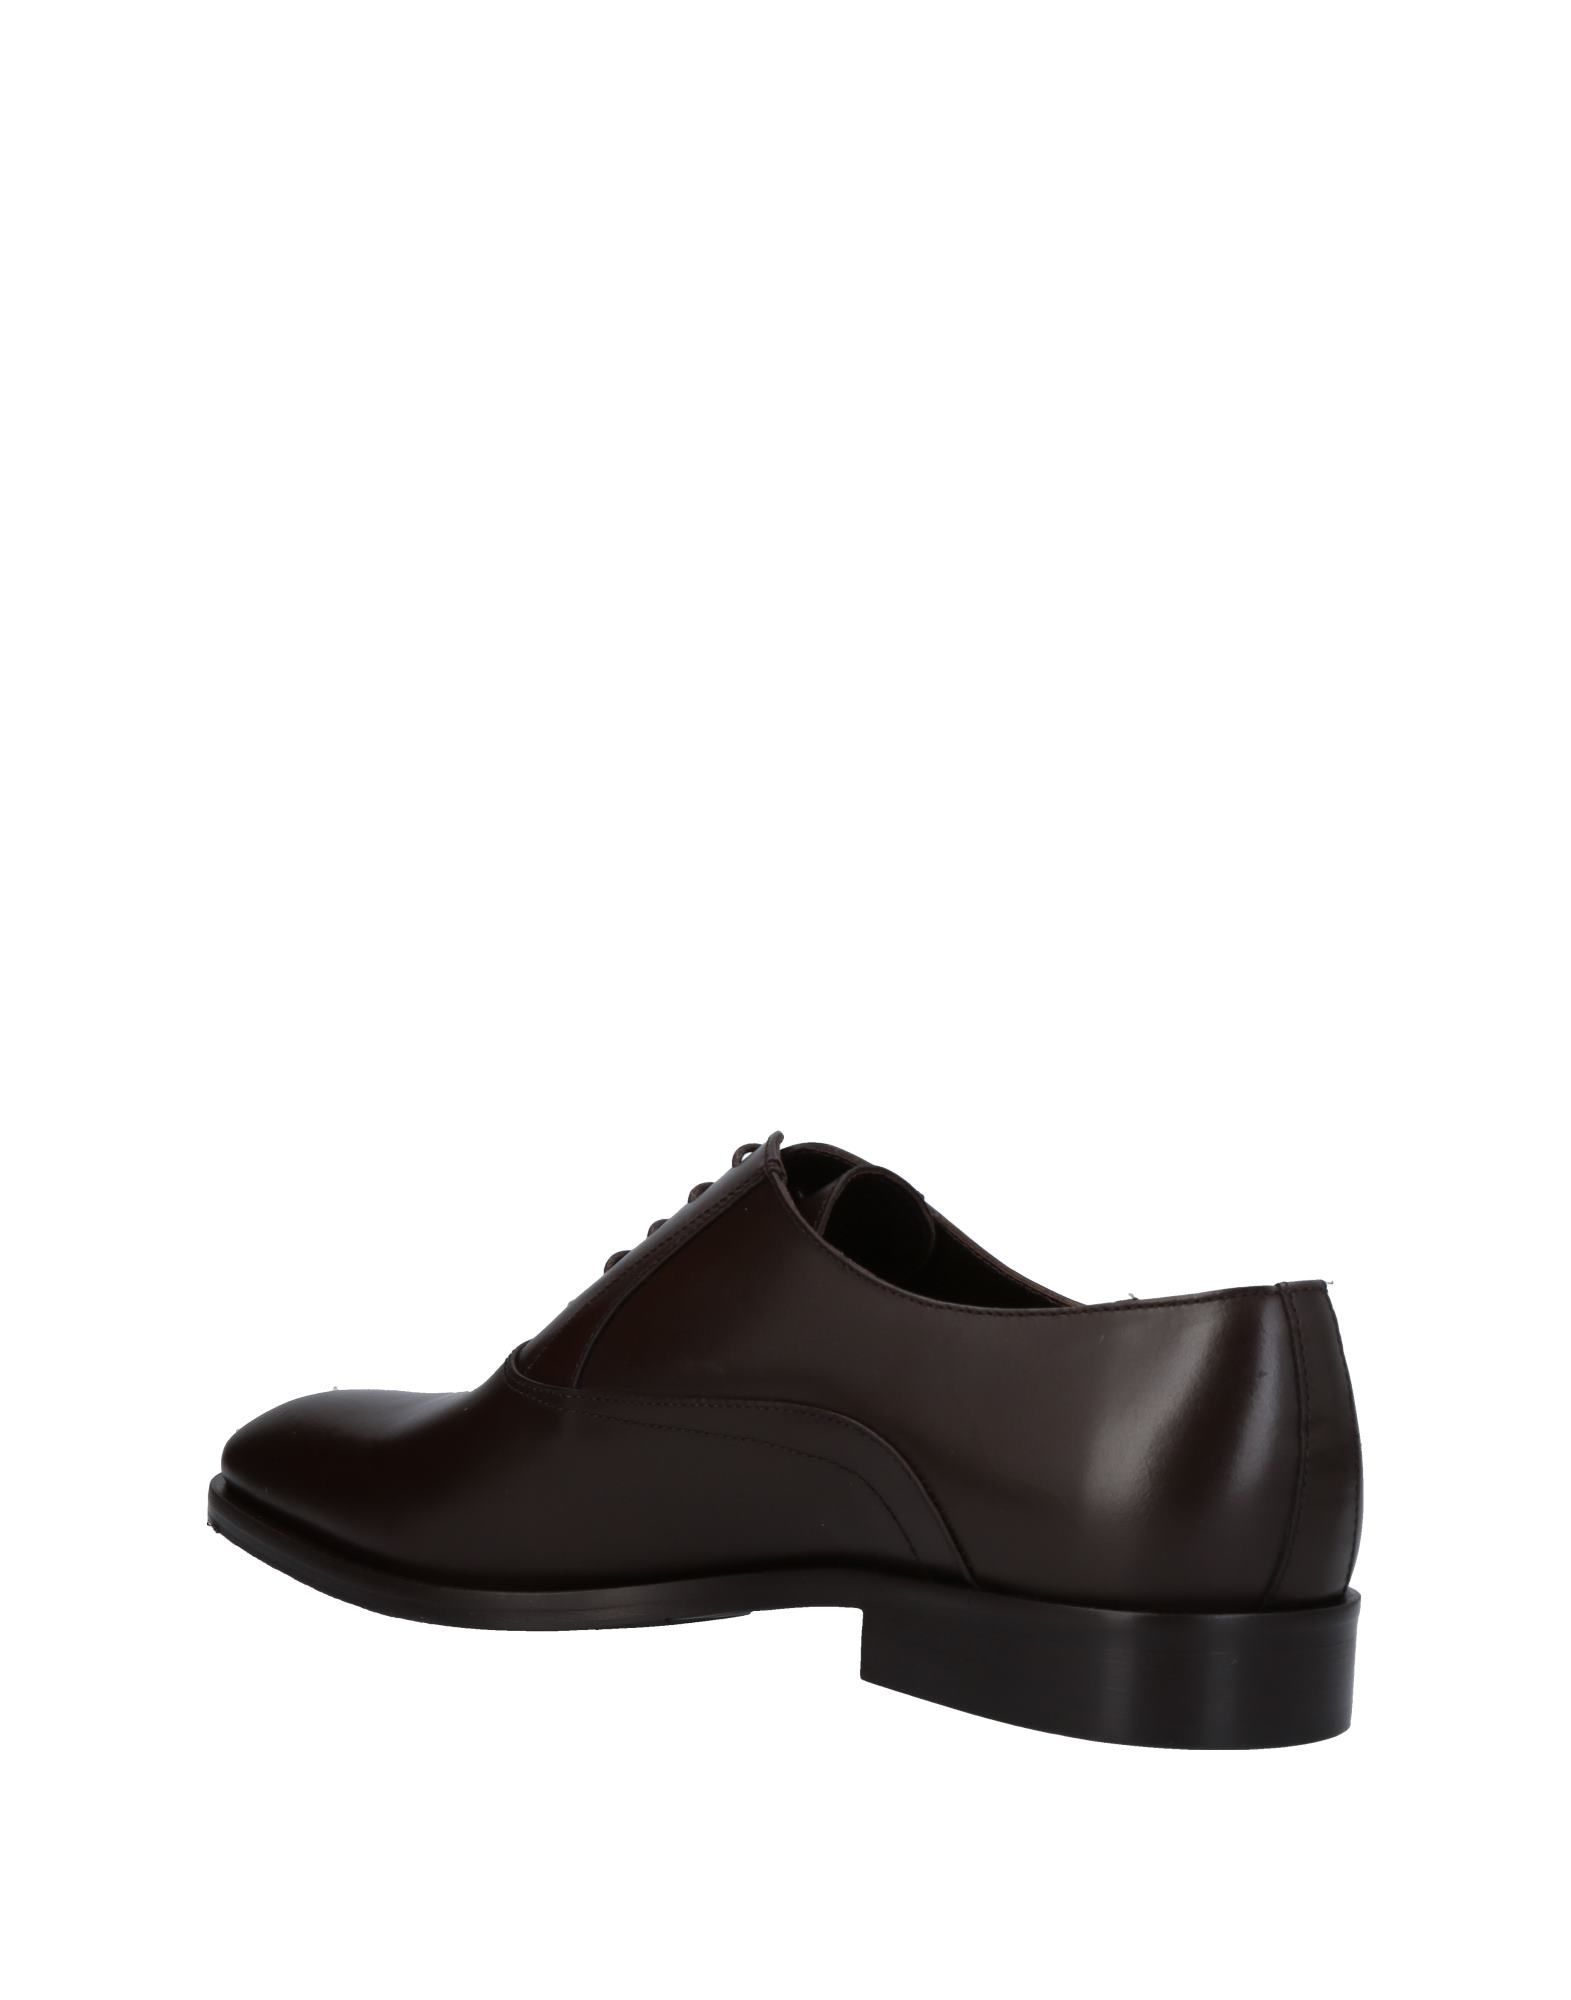 Alessandro Dell'Acqua Dark Brown Calf Leather Lace Up Shoes